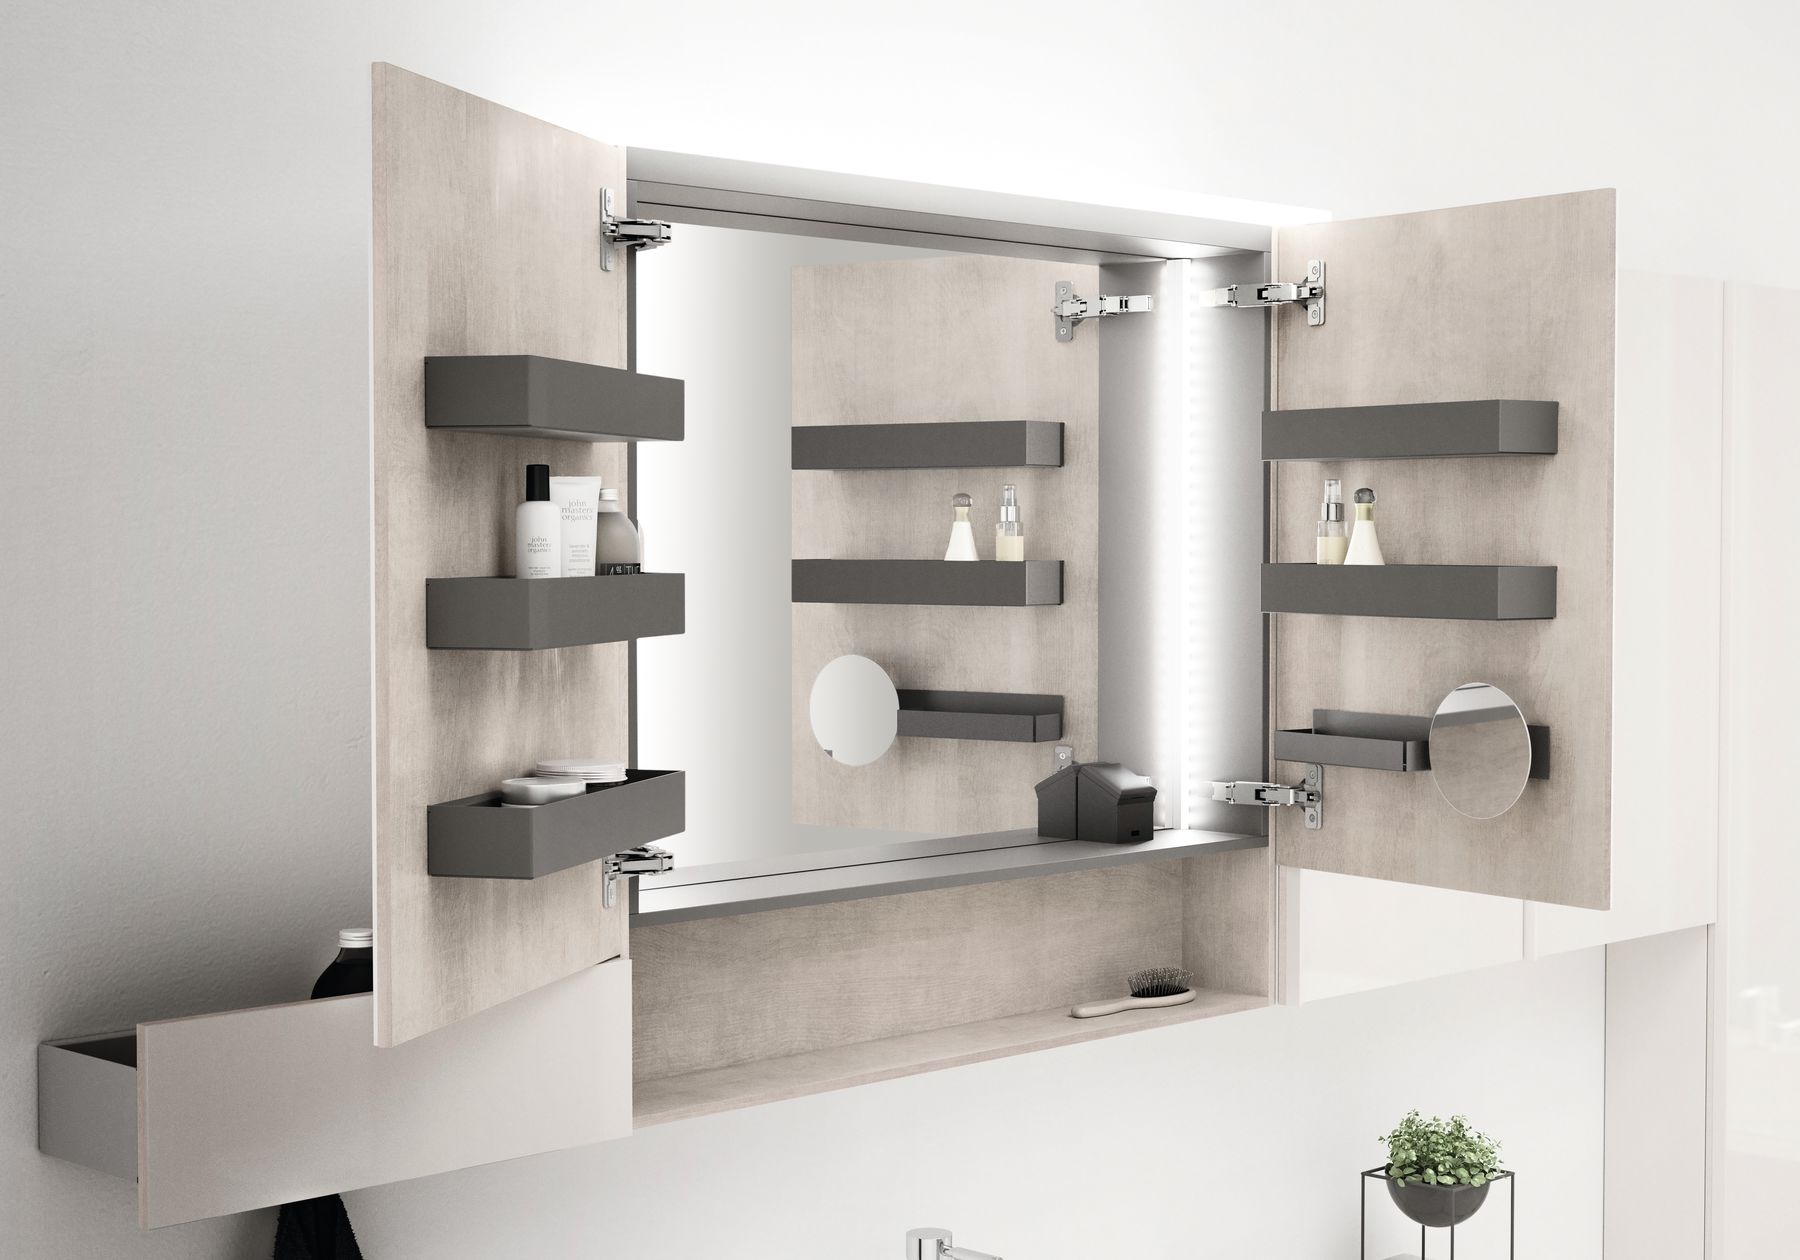 2017 Bathroom 14 J Acanto.tif_bigview.jpg